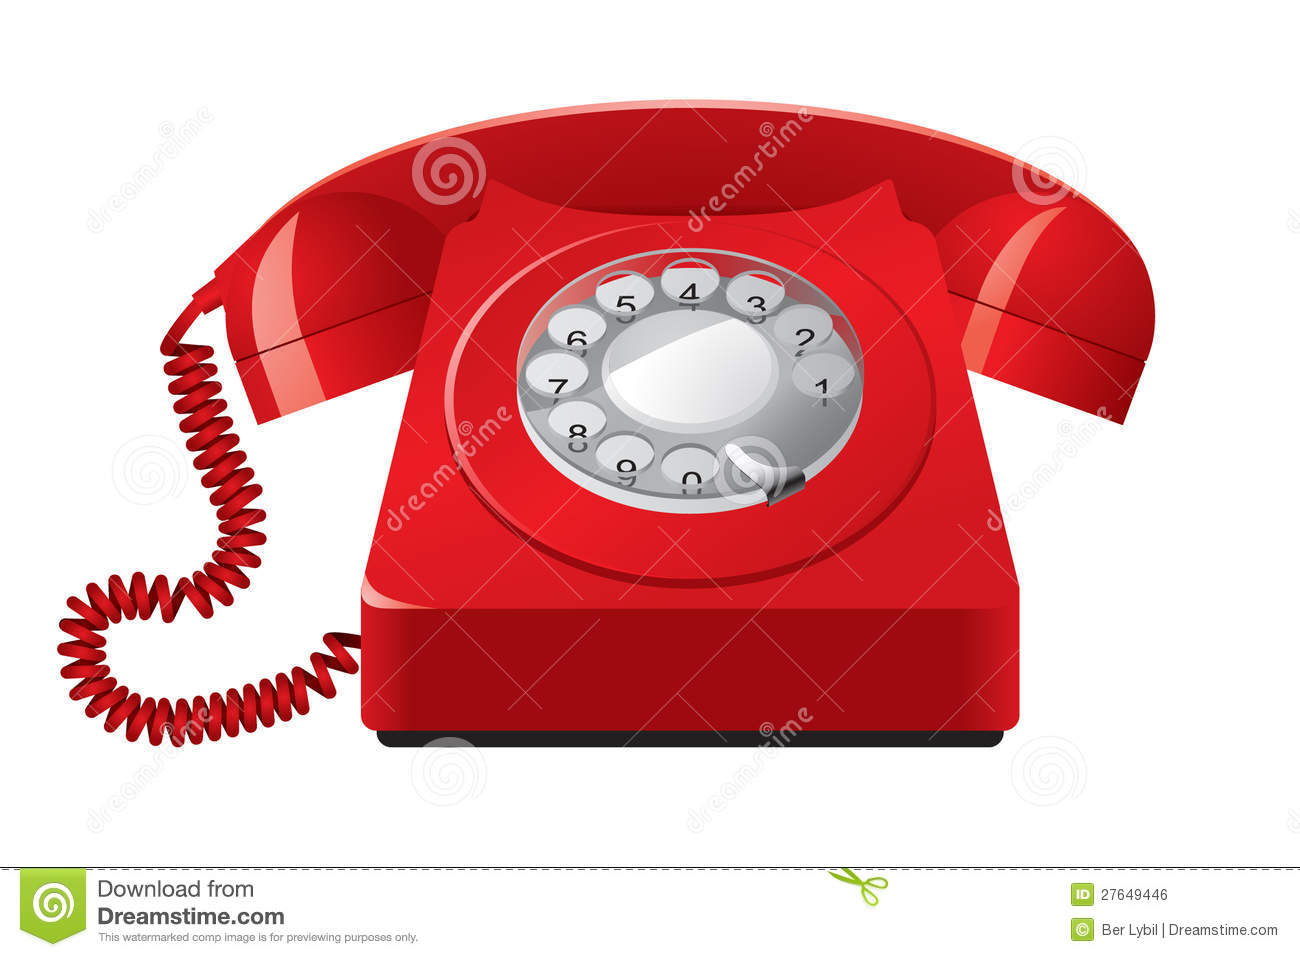 Telefono rosso red telephone 3